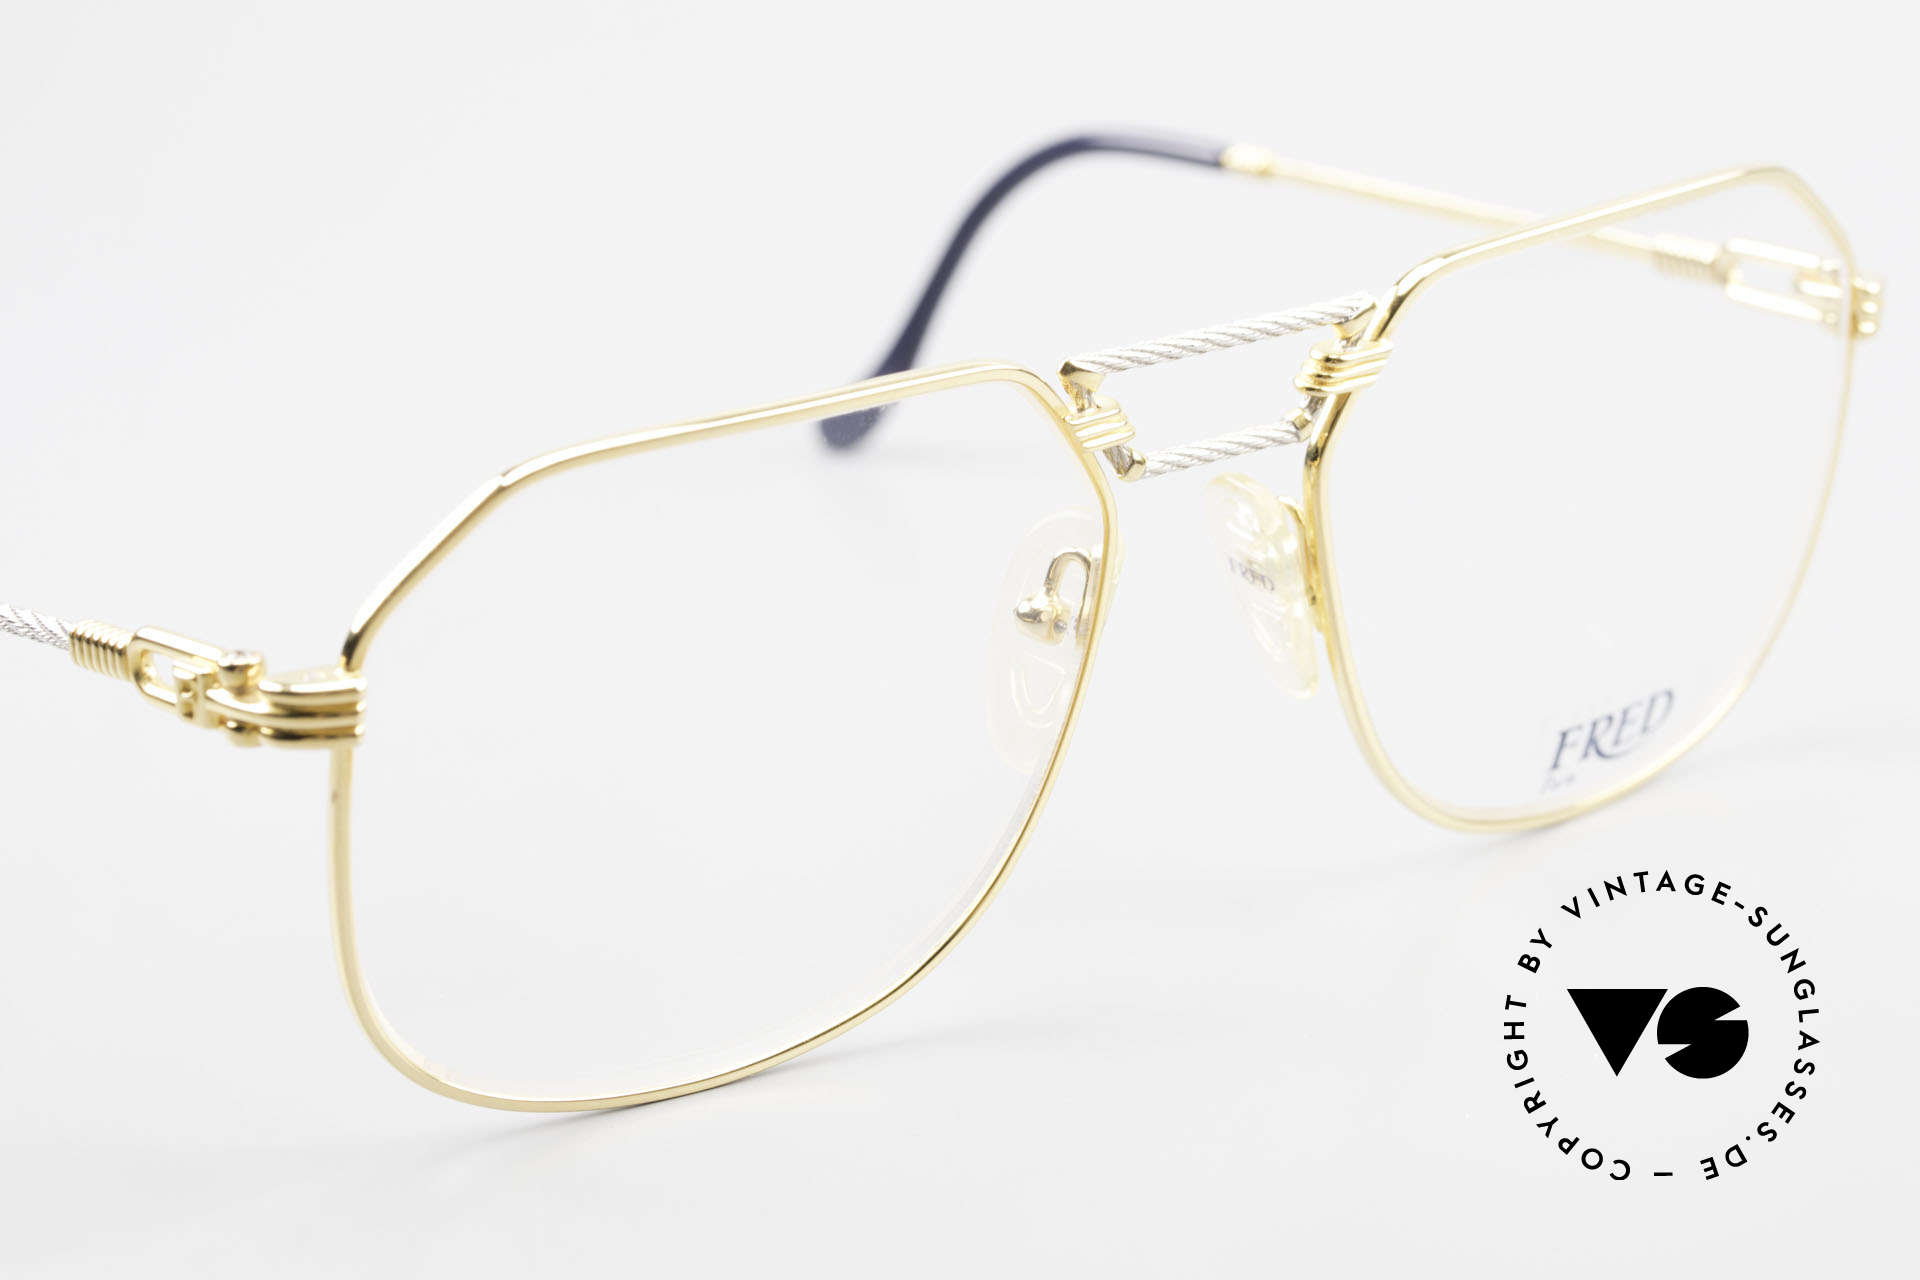 Fred Cap Horn - L Rare Luxury Eyeglasses 80's, precious bicolor edition, Platinum and 23ct gold-plated, Made for Men